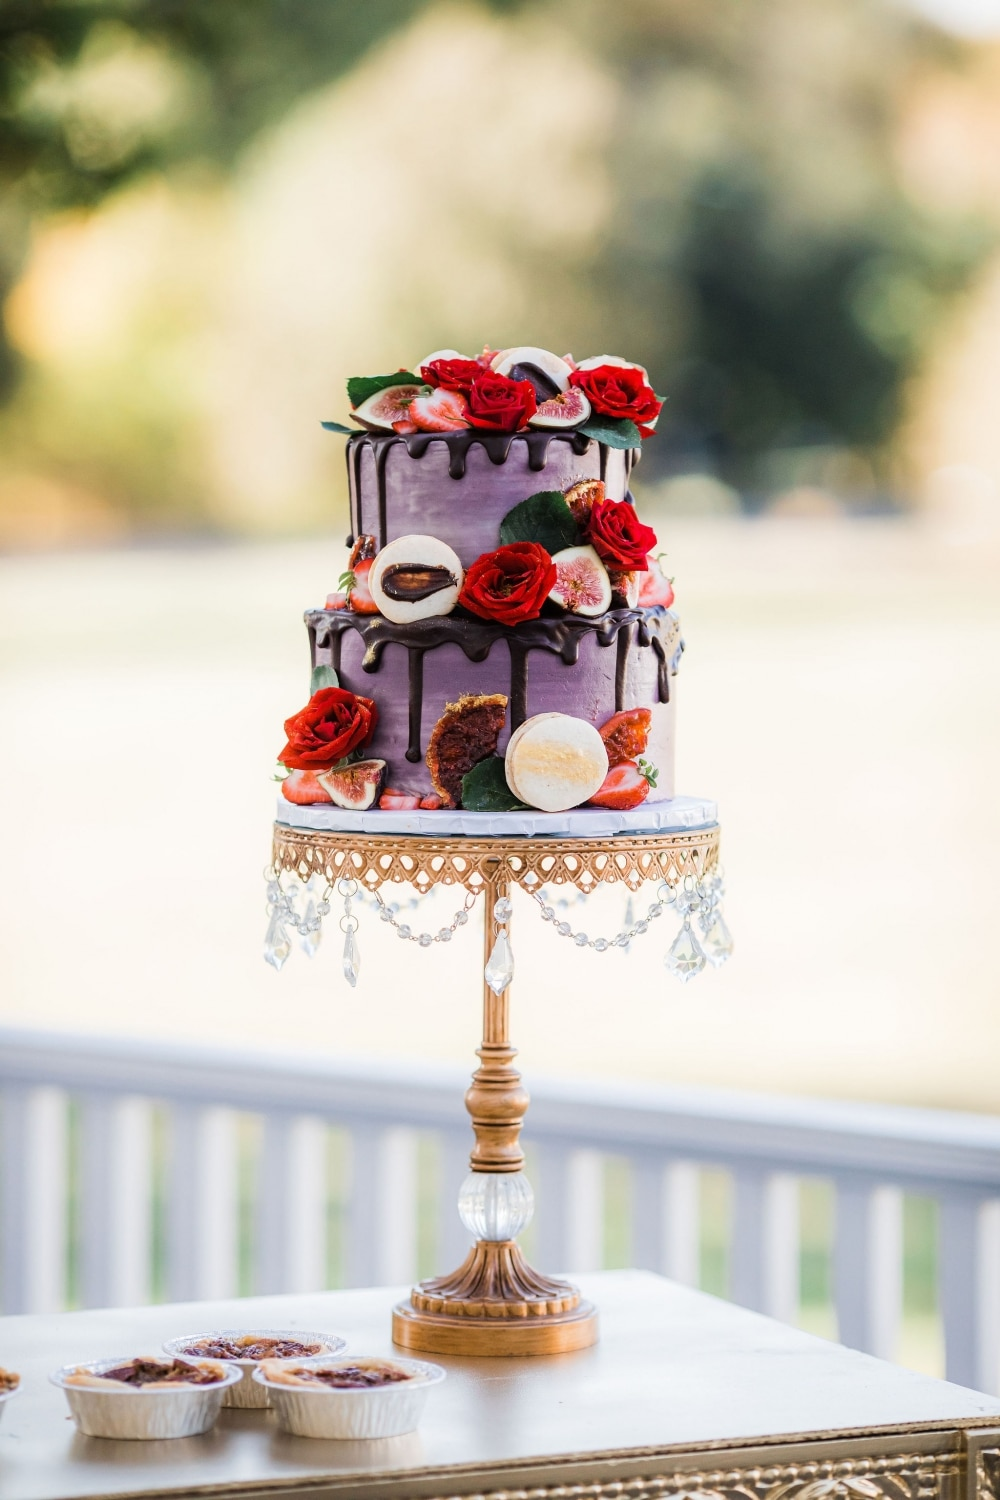 lavender cake with chocolate drip and red and pink decorated flowers